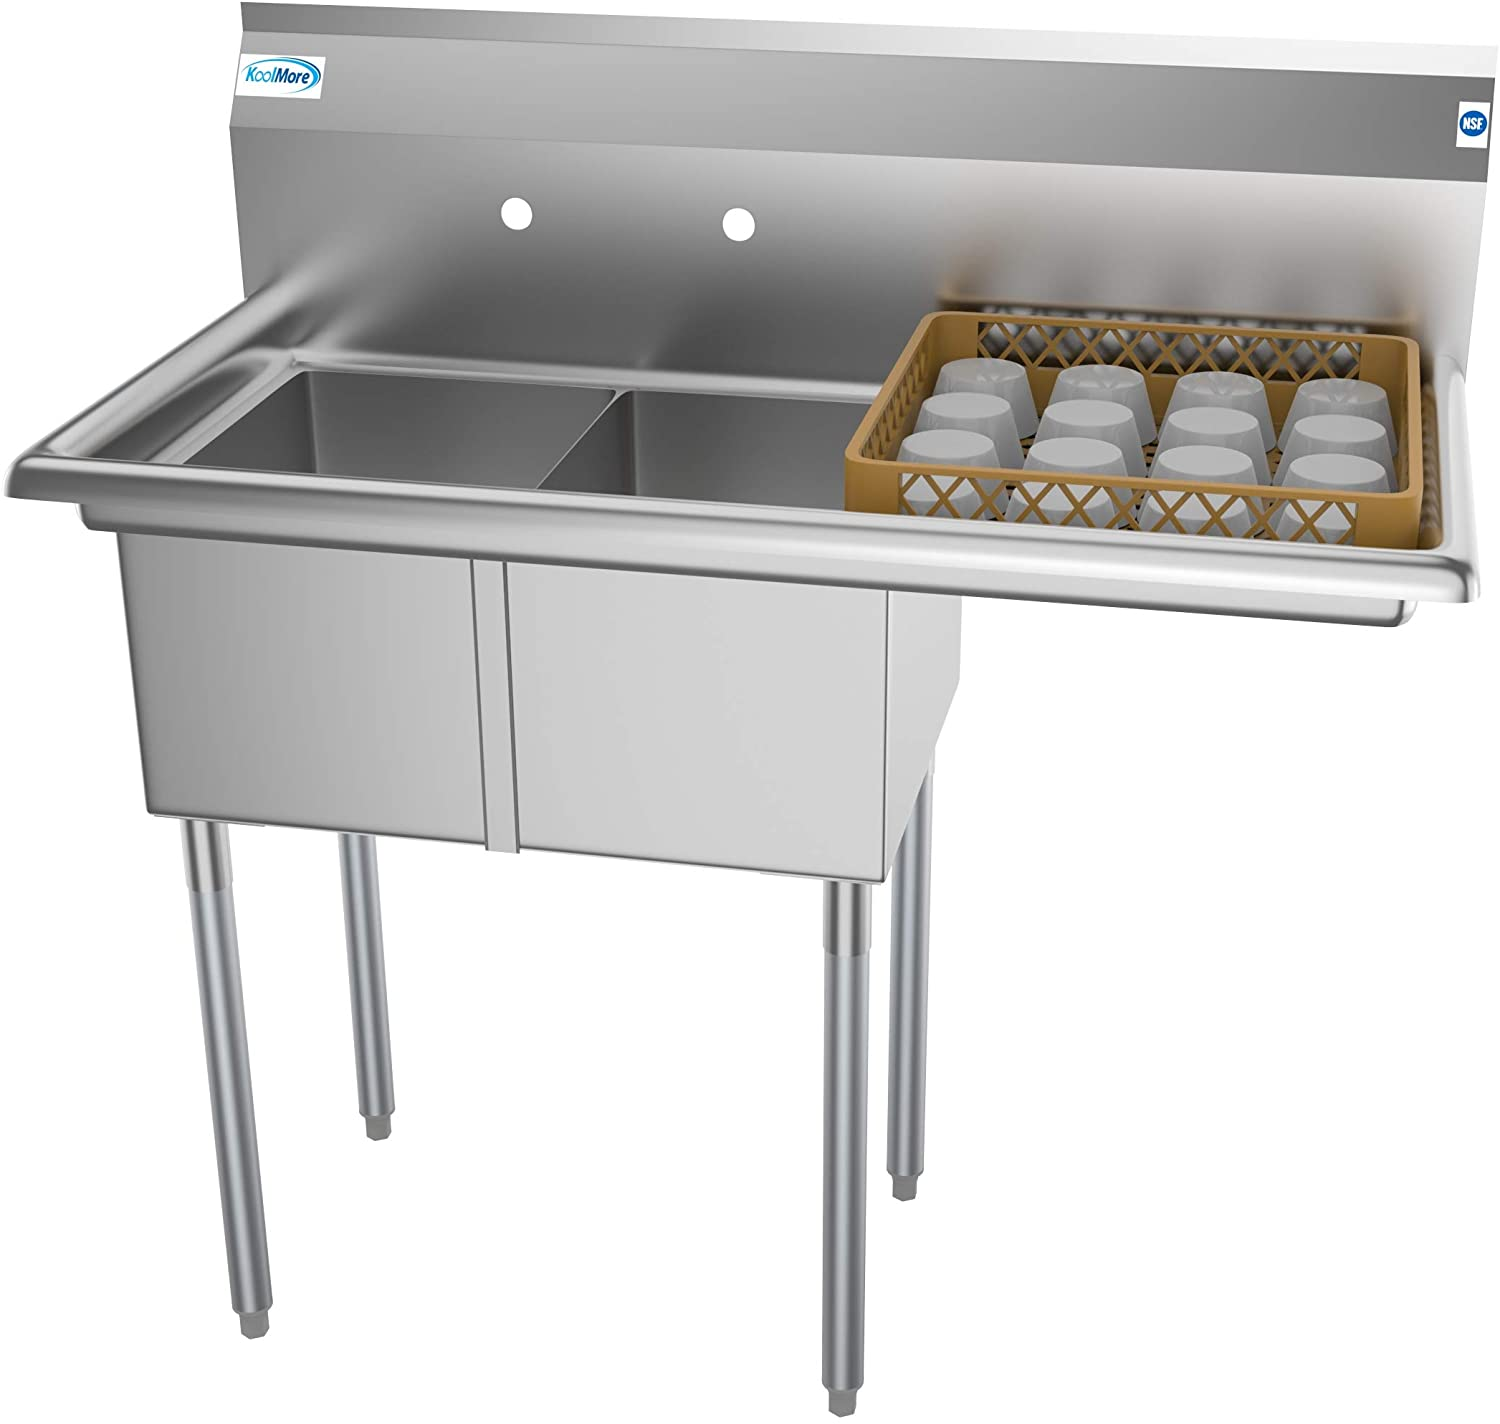 KoolMore - SB121610-16R3 2 Compartment Stainless Steel NSF Commercial Kitchen Prep & Utility Sink with Drainboard - Bowl Size 12